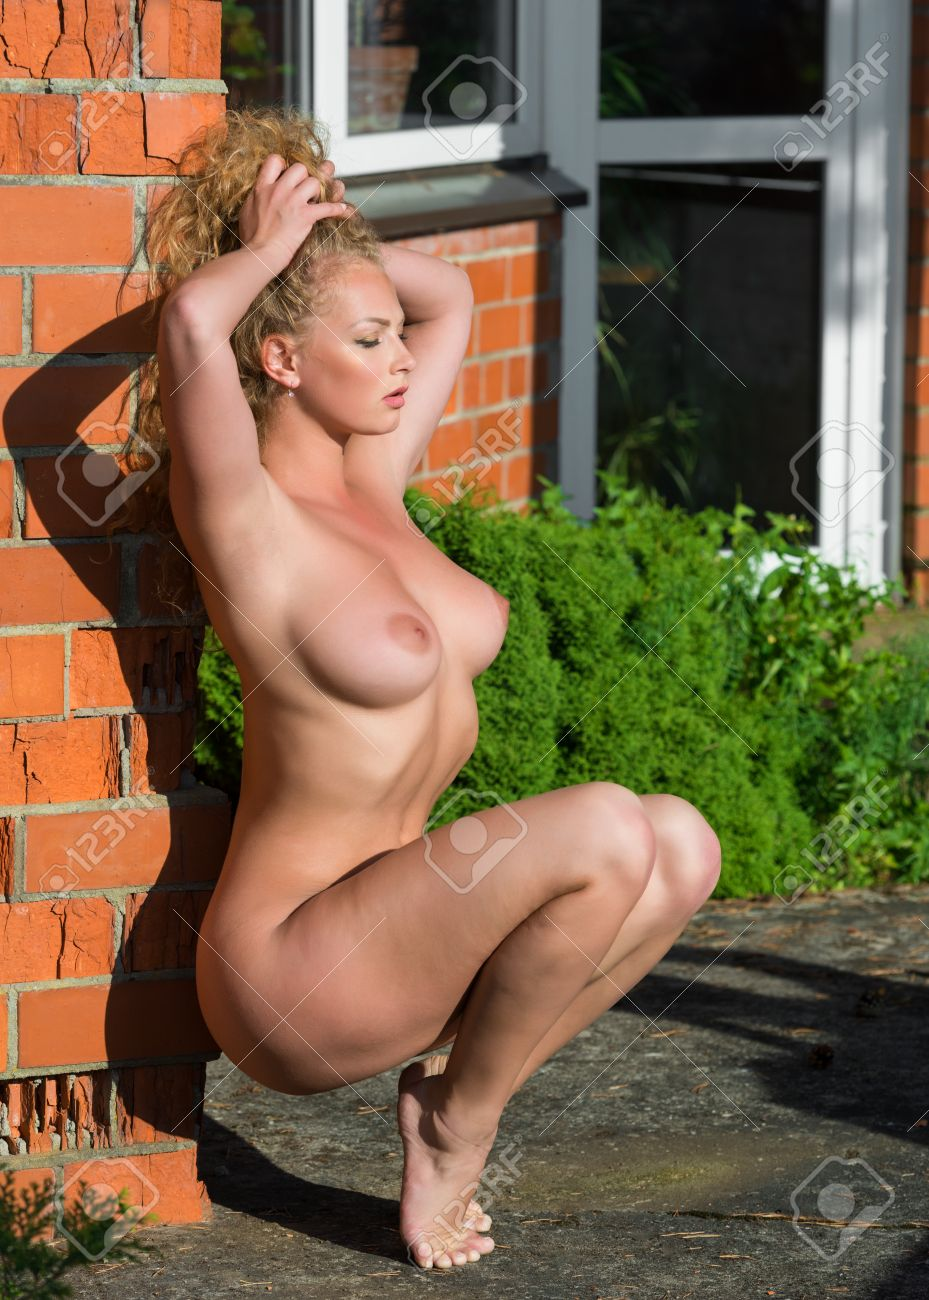 beautiful young naked woman posing near a brick wall stock photo